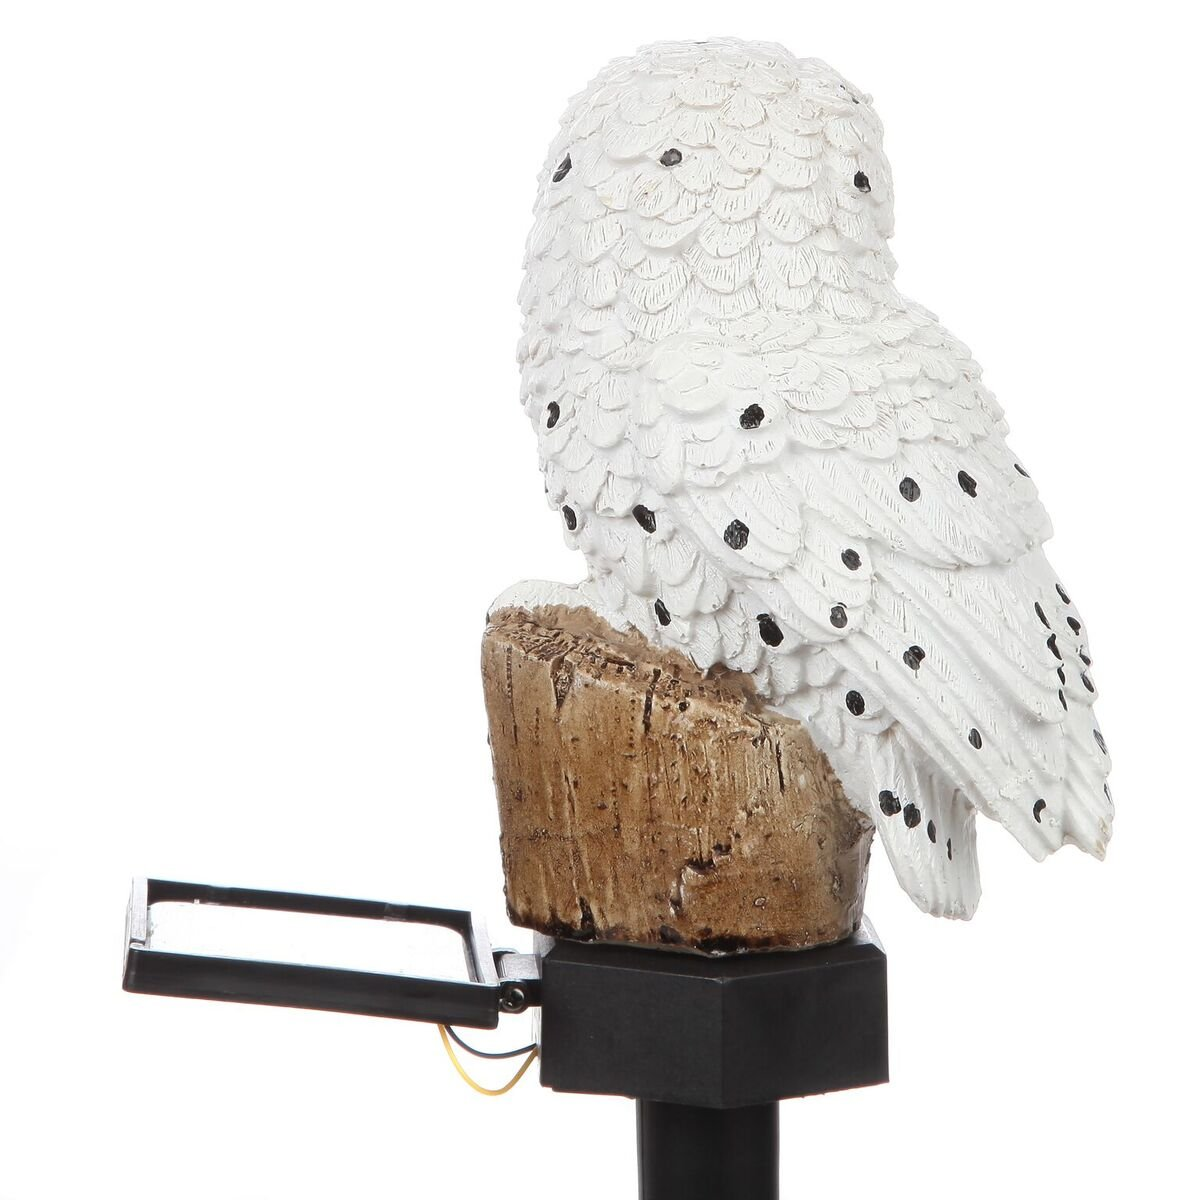 Trenton Gifts Weather Resistant Outdoor LED Solar Owl Light, Garden Stake | White by Trenton Gifts (Image #7)